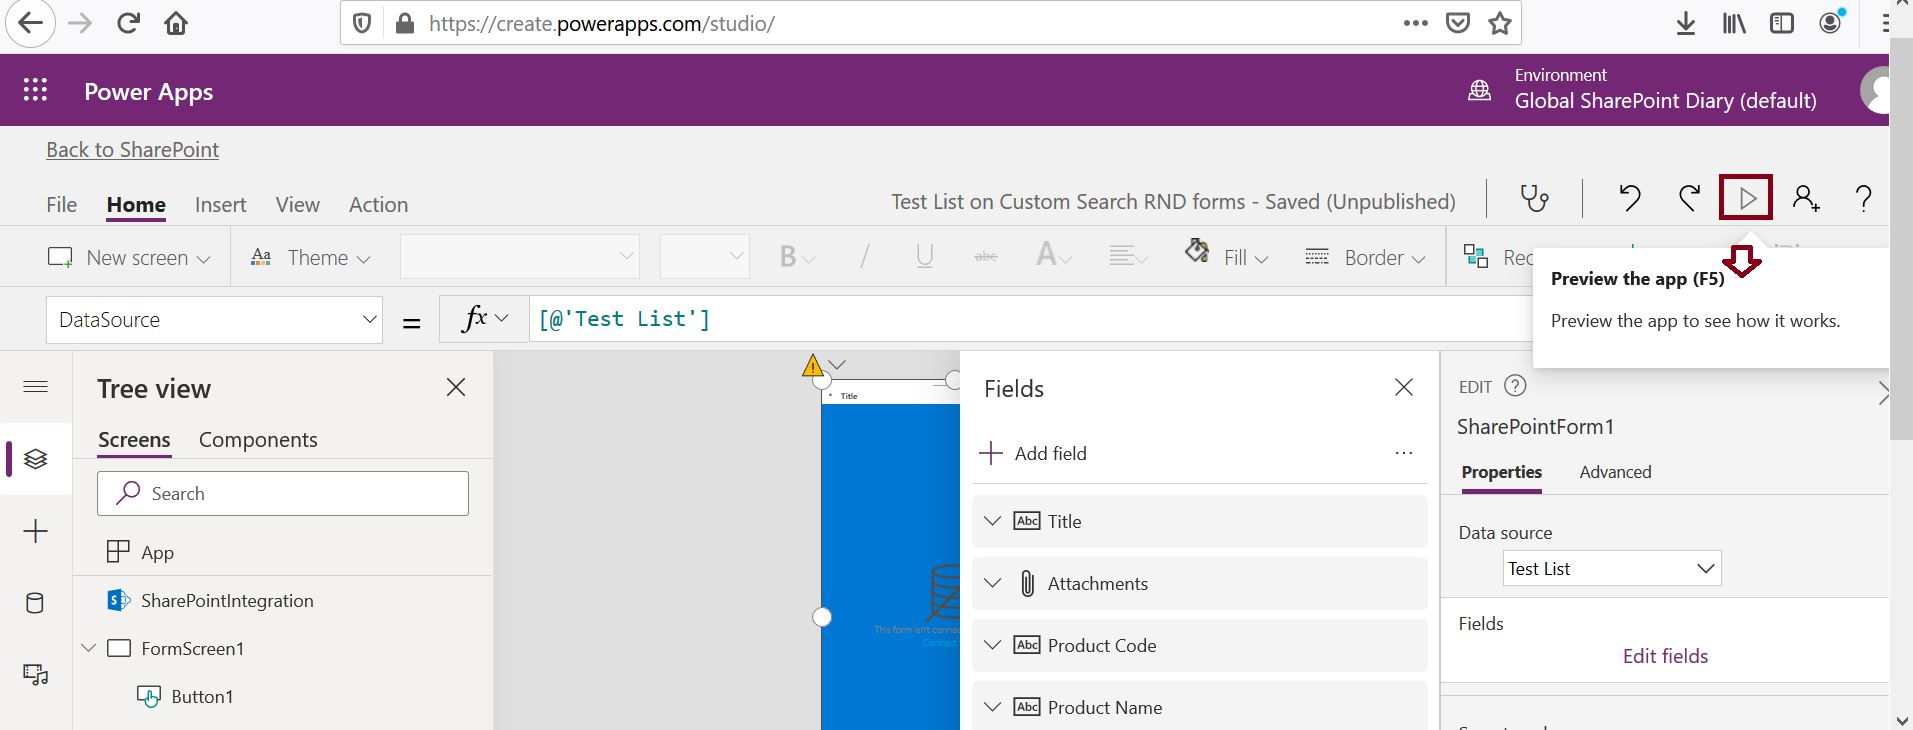 How to preview PowerApps app?